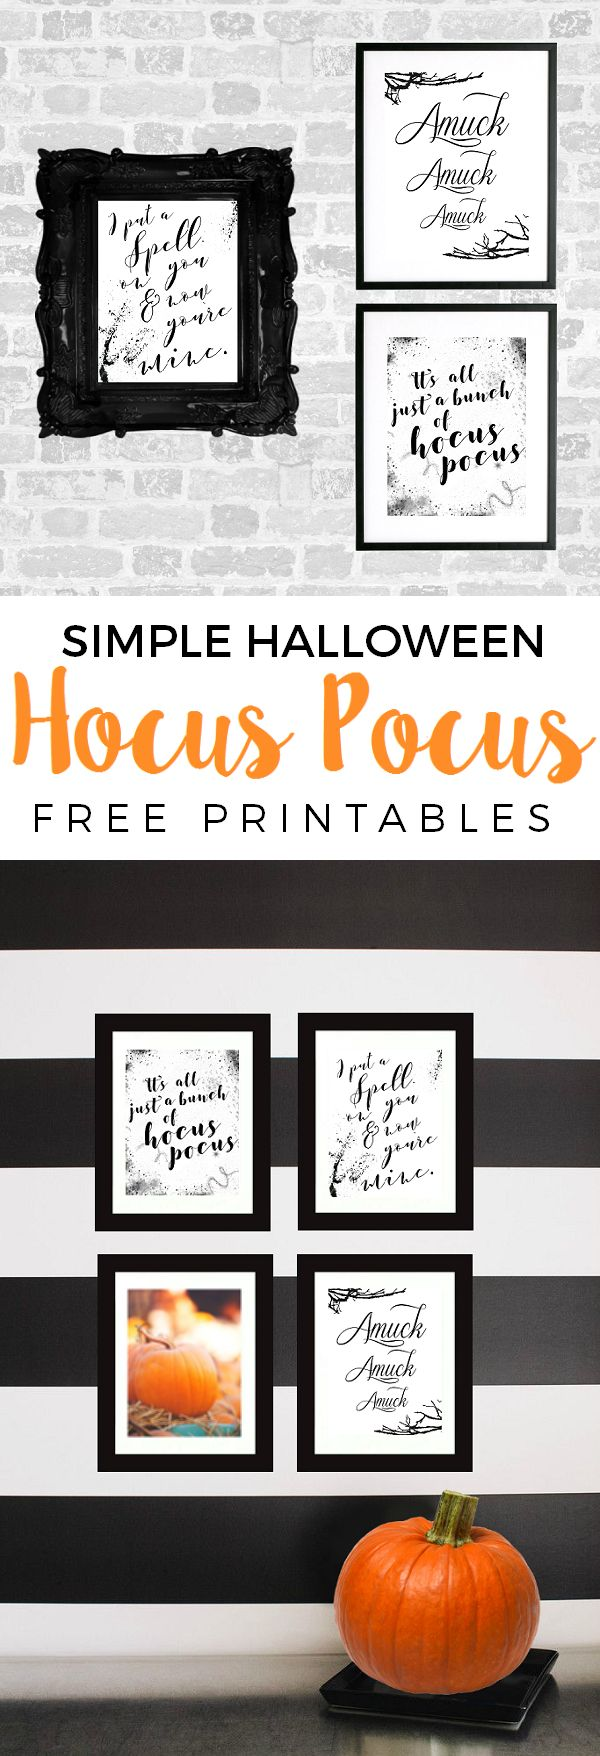 Simple Halloween Hocus Pocus freebies pin